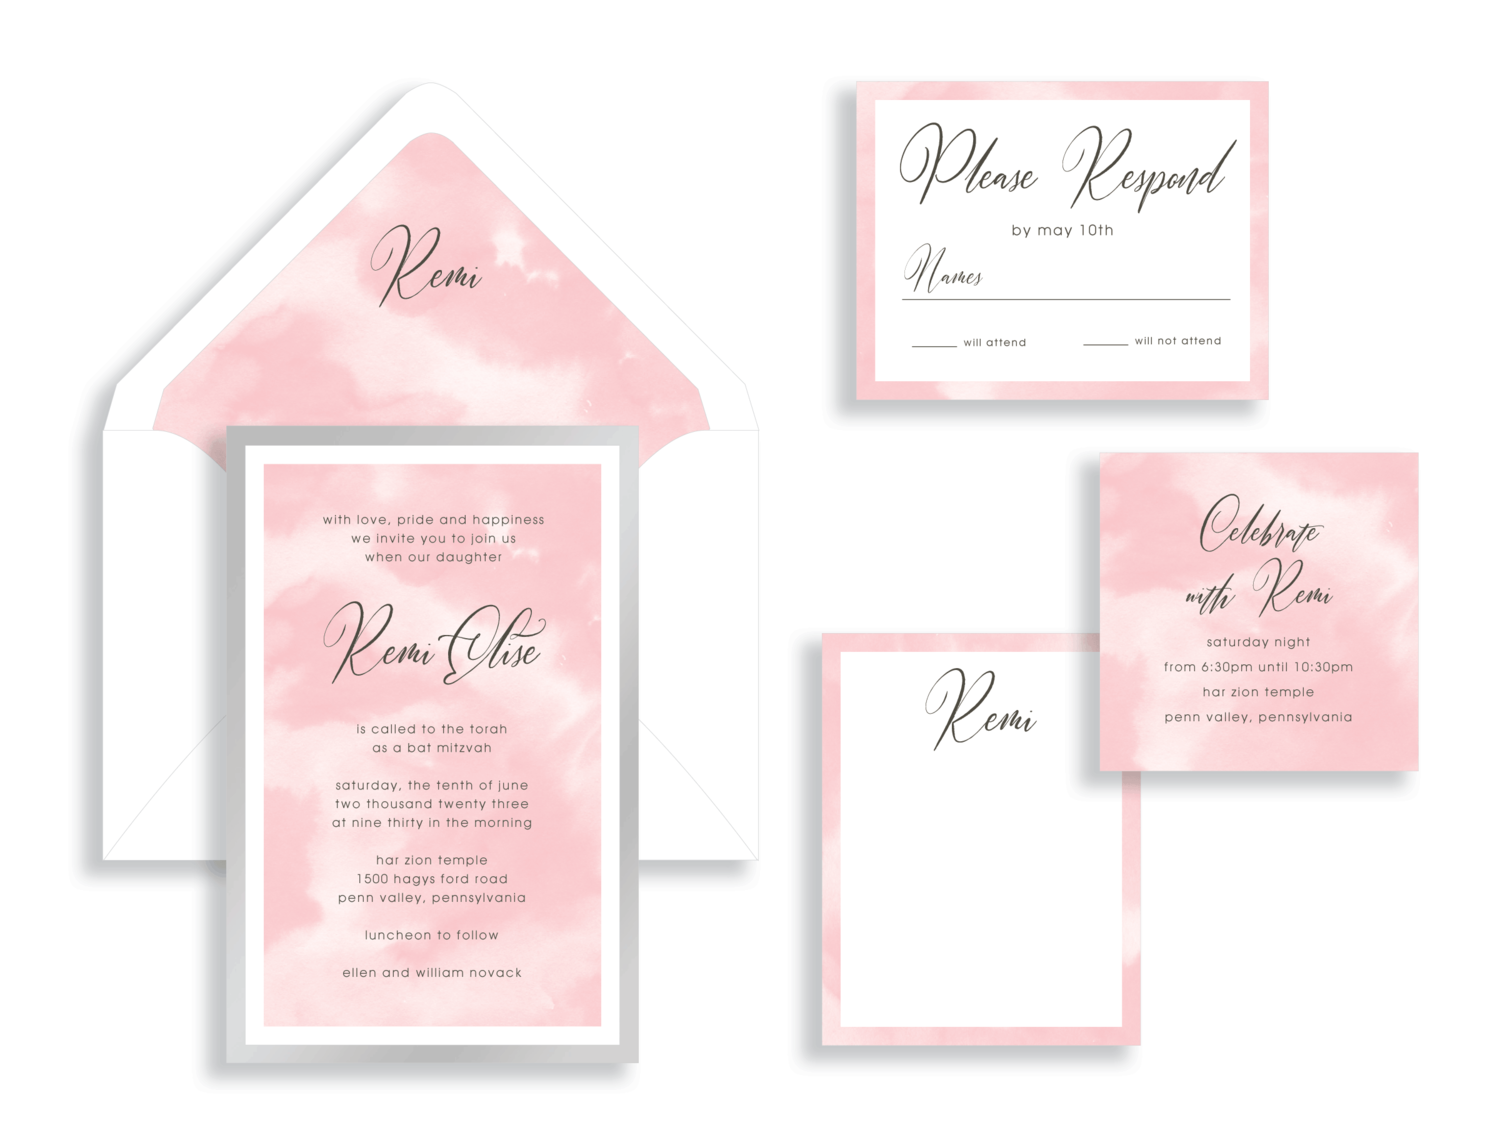 Remi bat mitzvah invitation available in northern Virginia from Staccato